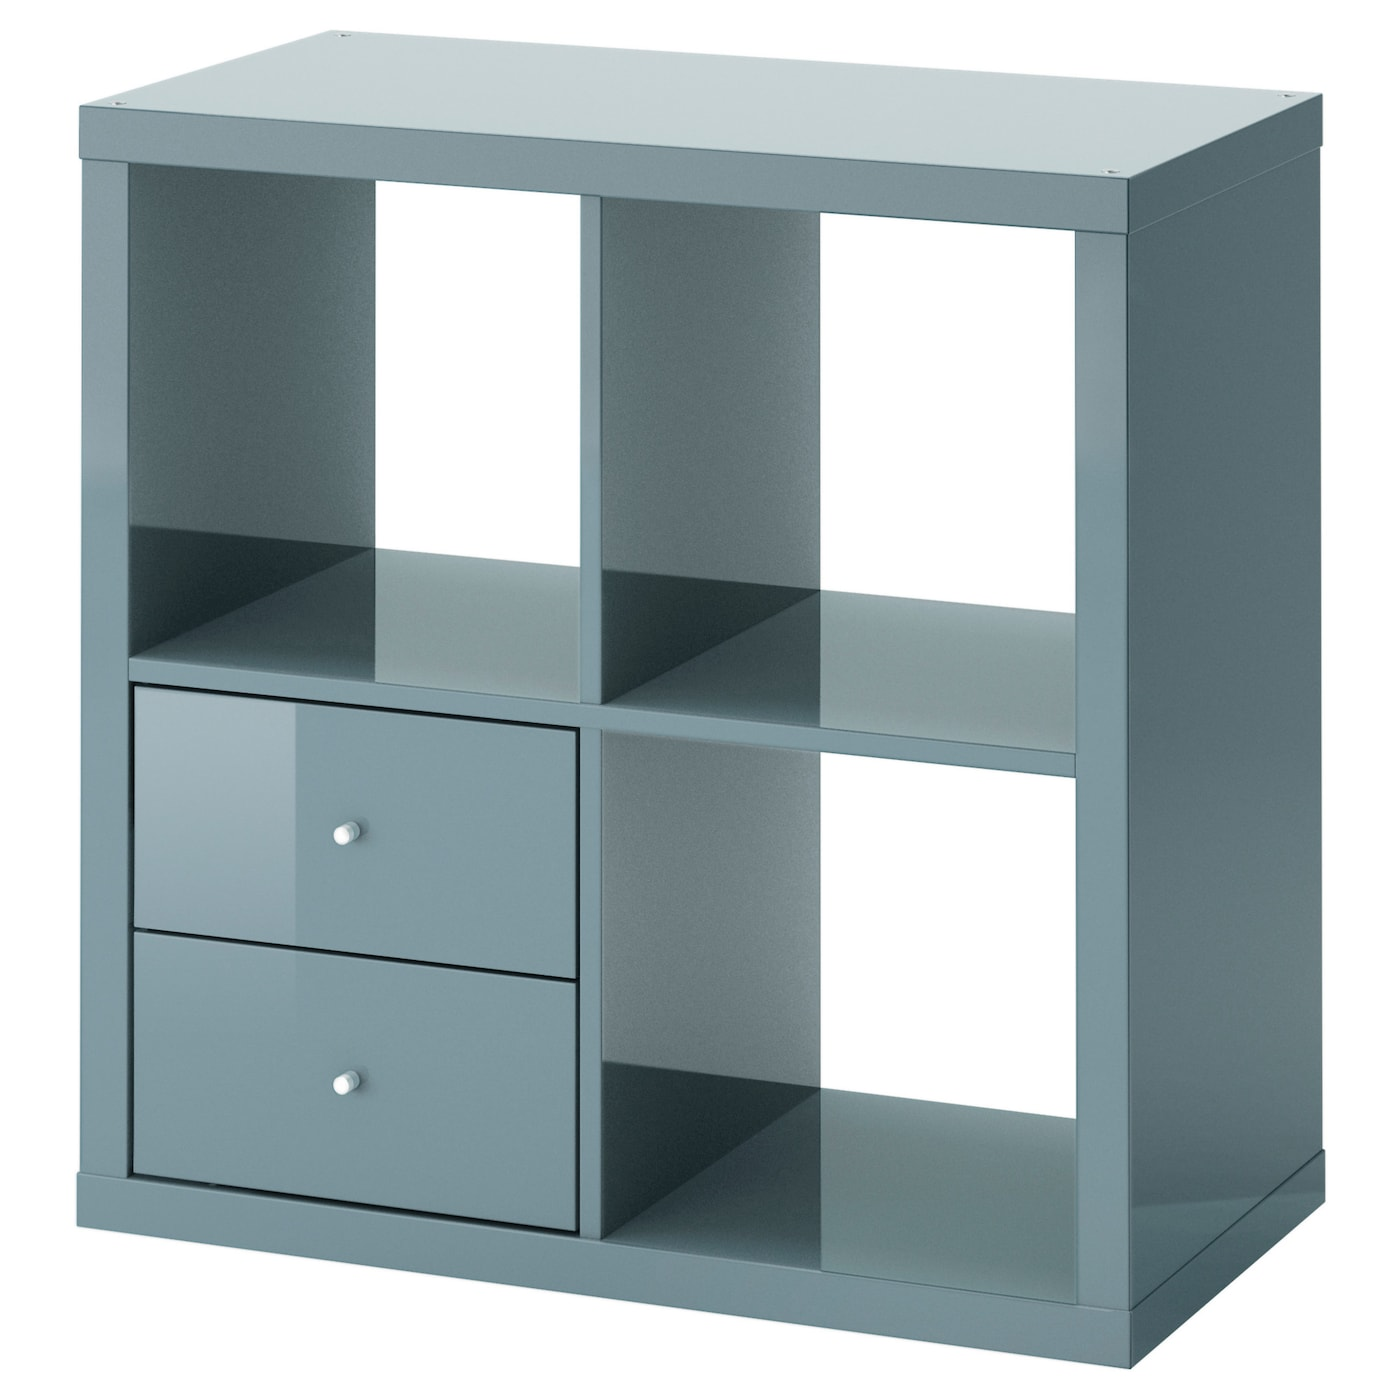 kallax shelving unit with drawers high gloss grey turquoise 77x77 cm ikea. Black Bedroom Furniture Sets. Home Design Ideas